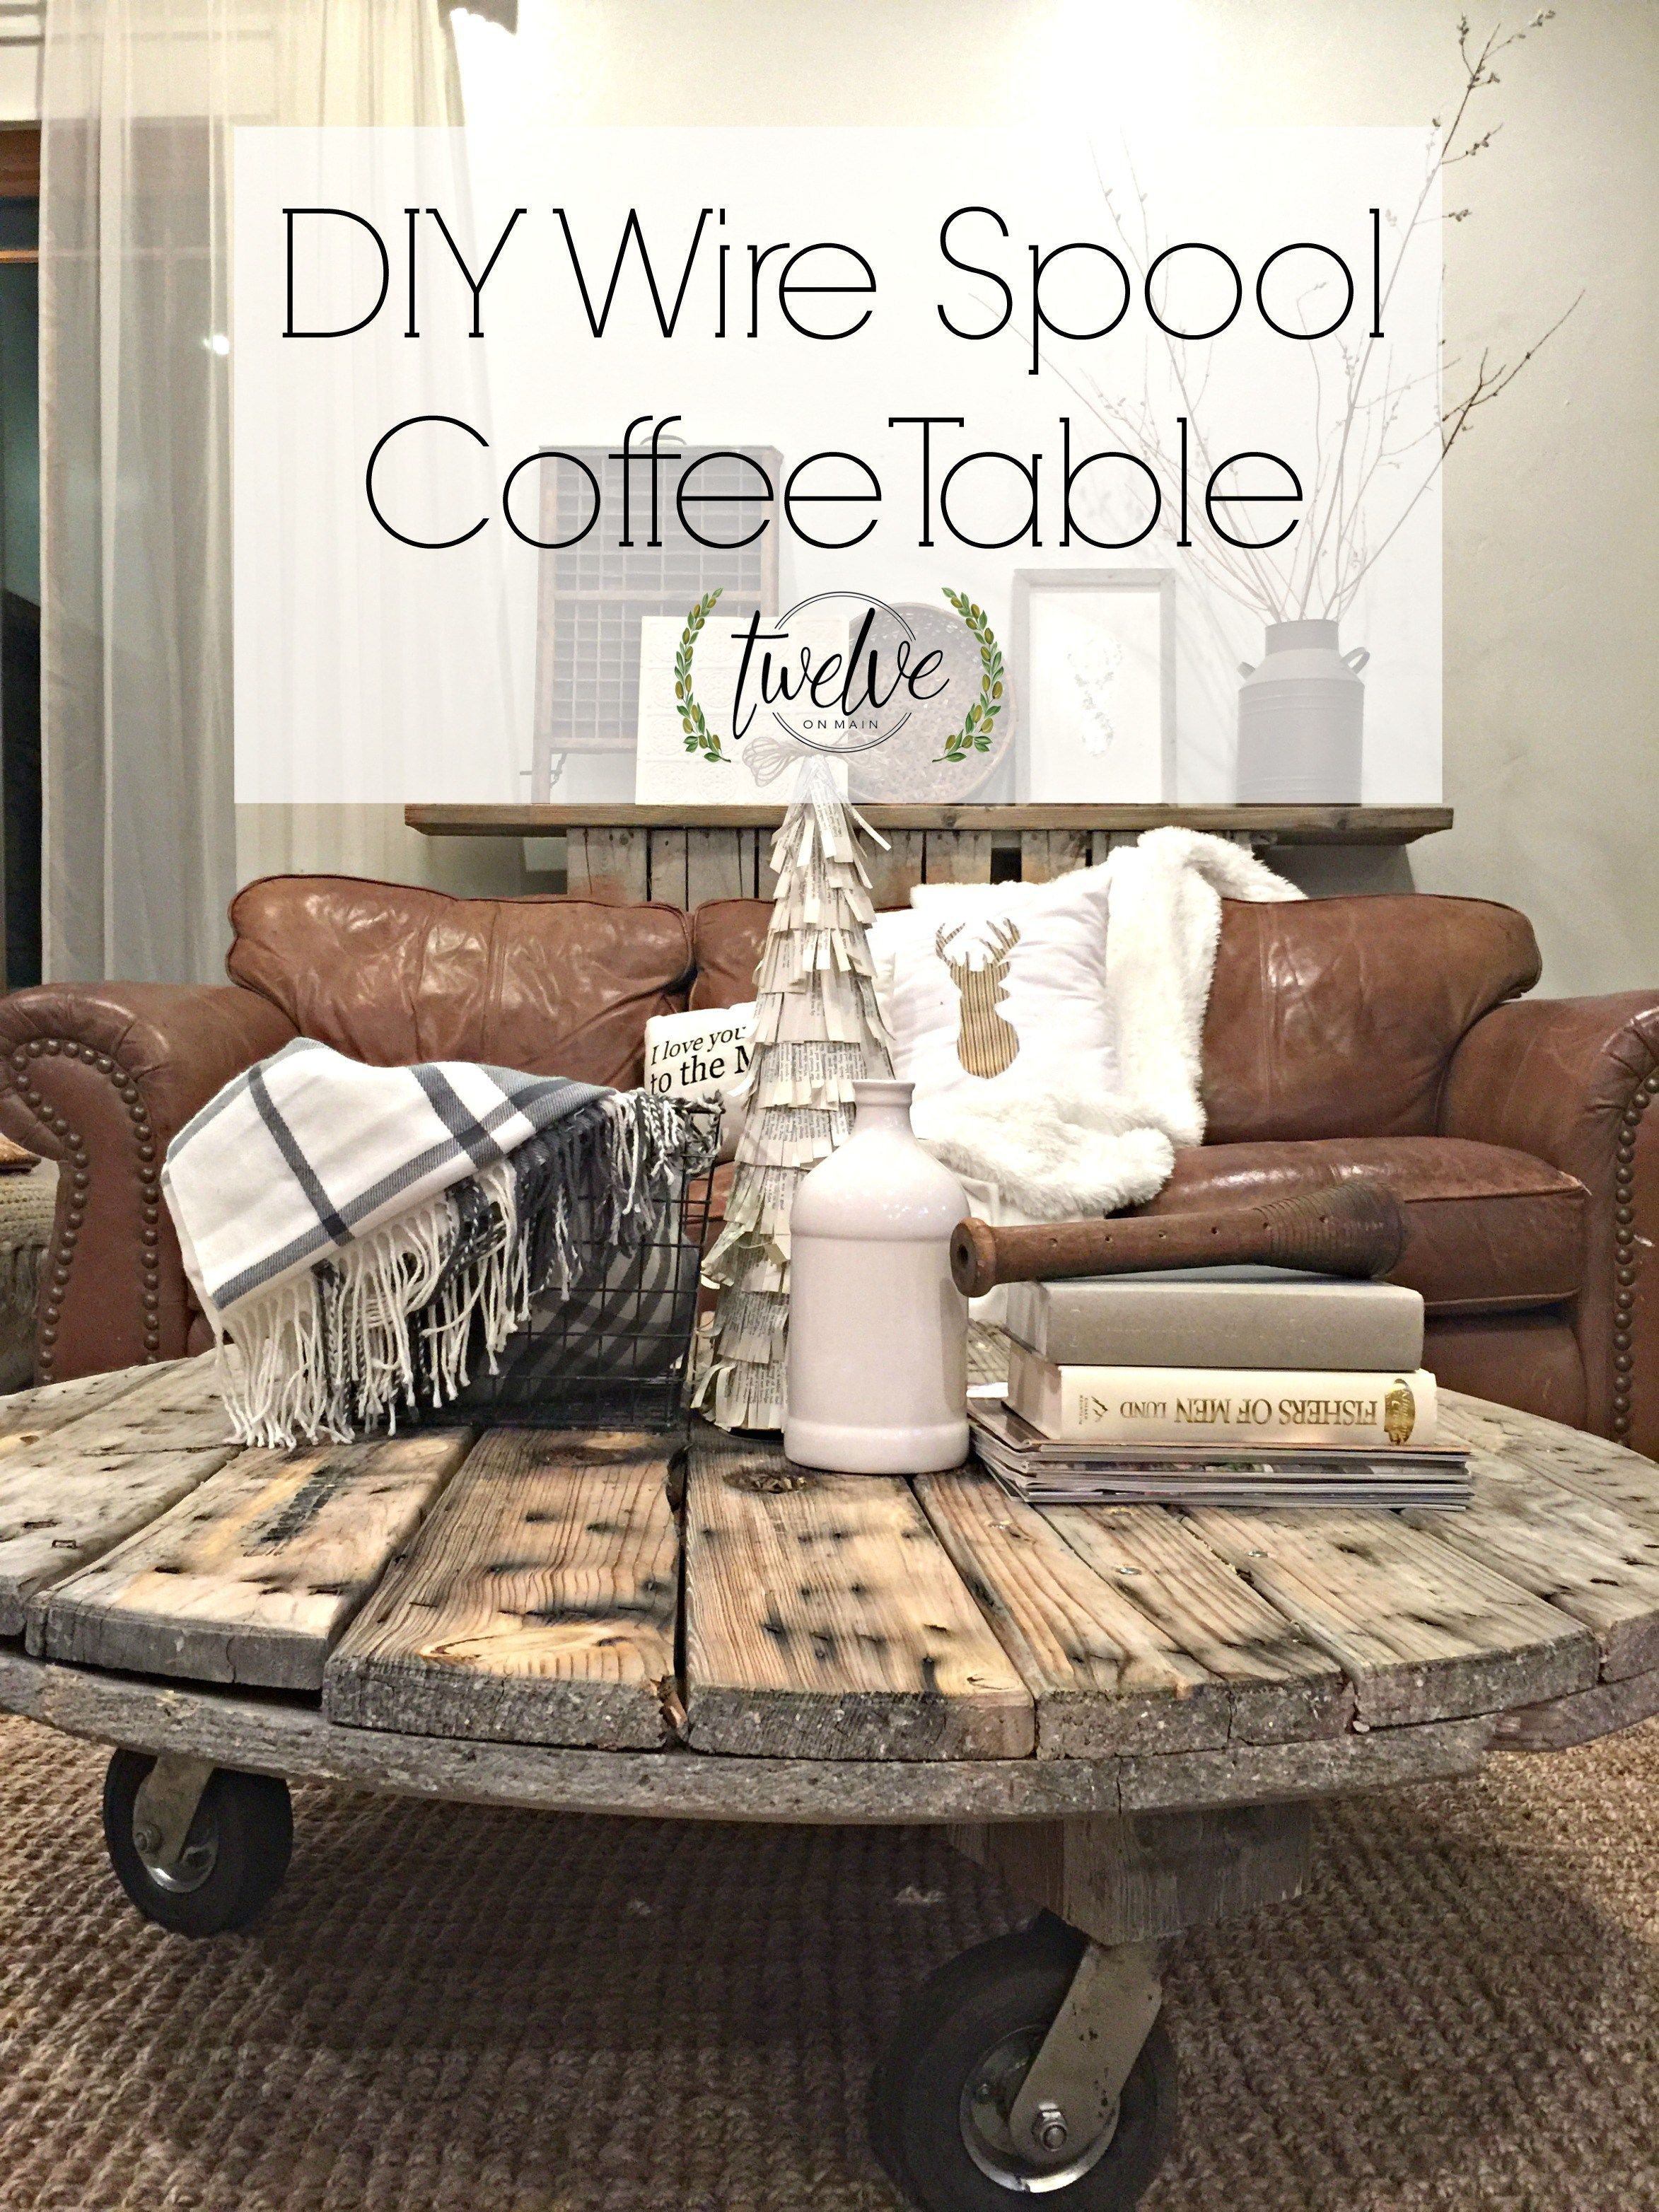 Diy wire spool coffee table wire spool coffee and pallets